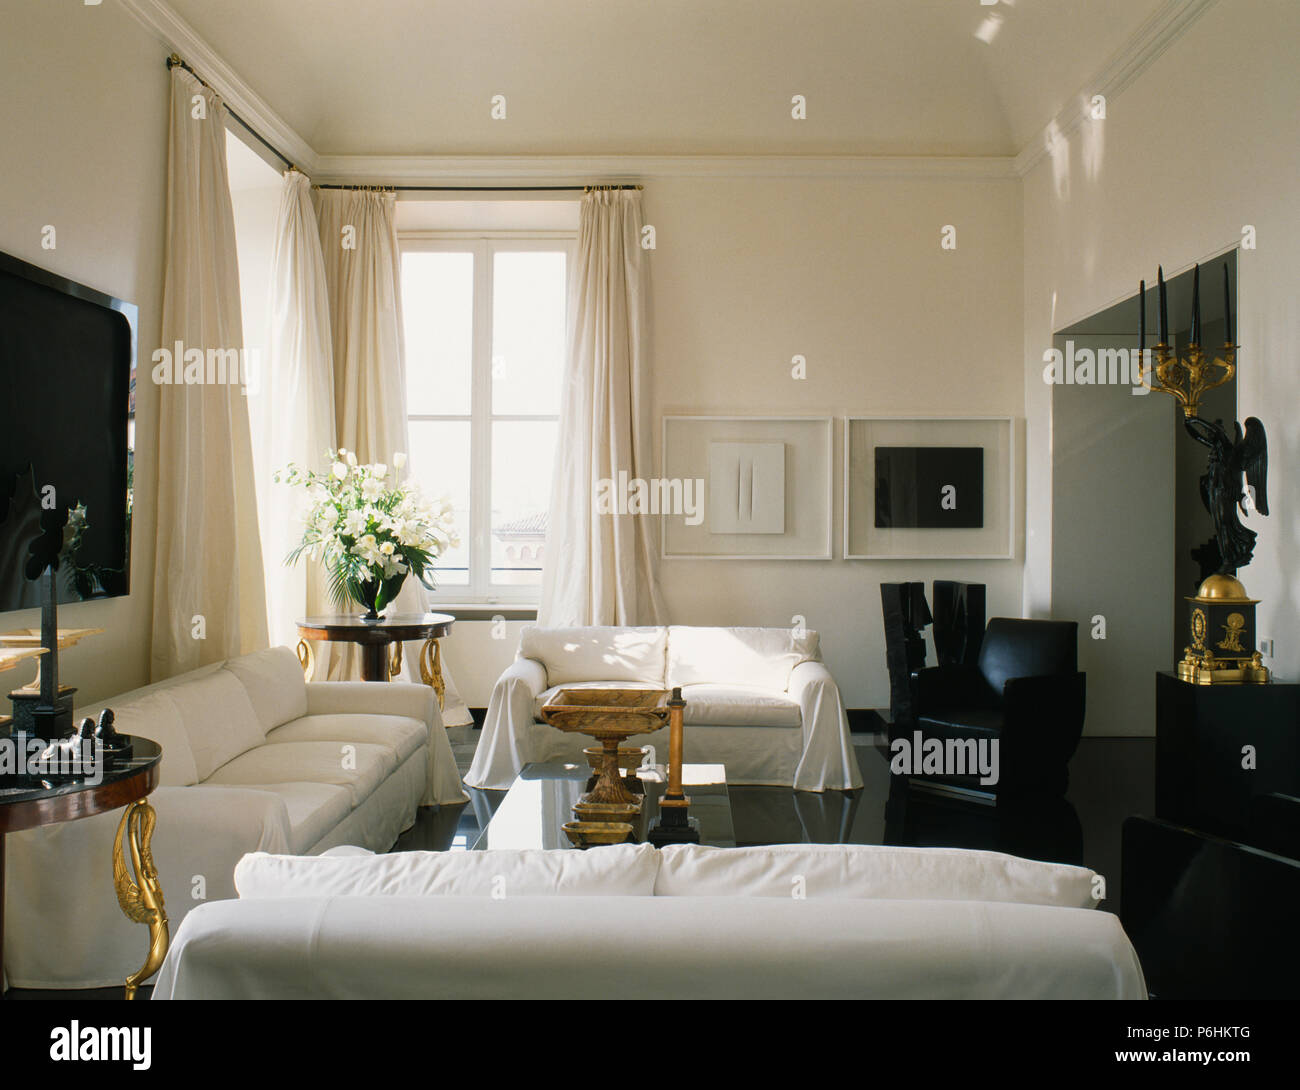 White Sofas In Modern White Apartment Living Room With White Cotton Drapes And Black Flooring Stock Photo Alamy